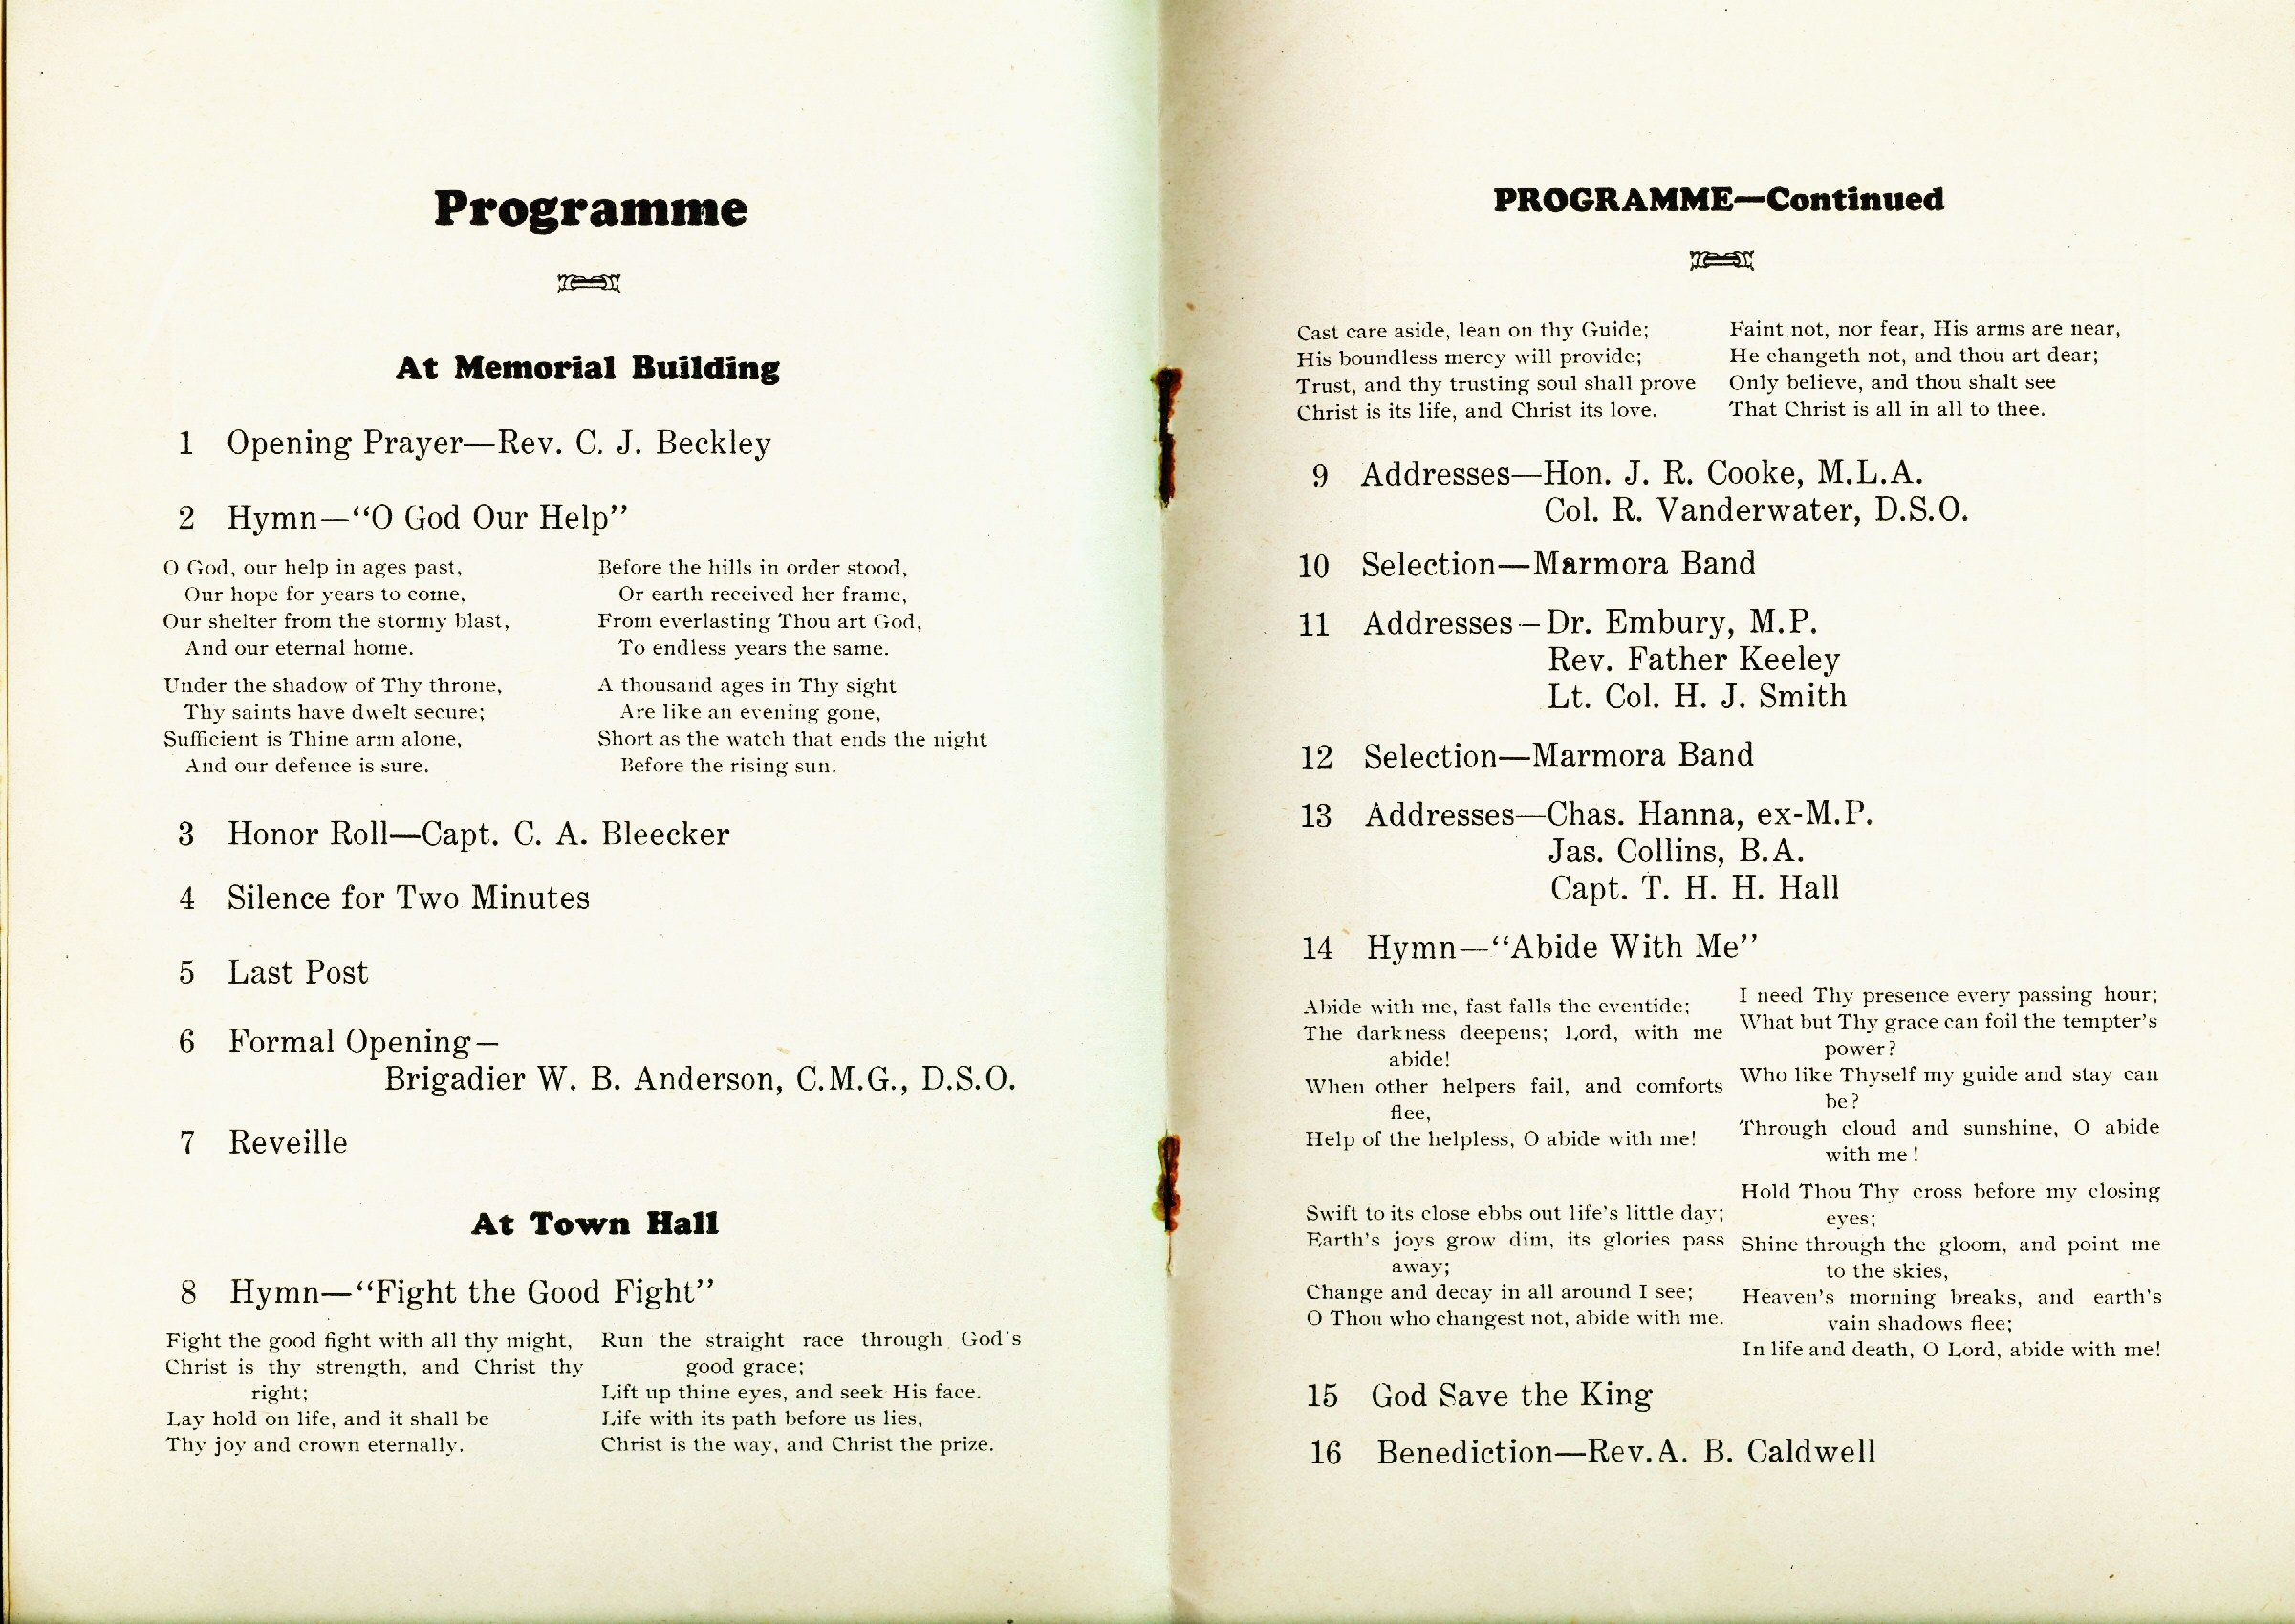 Program opening of Memorial building 2.jpg